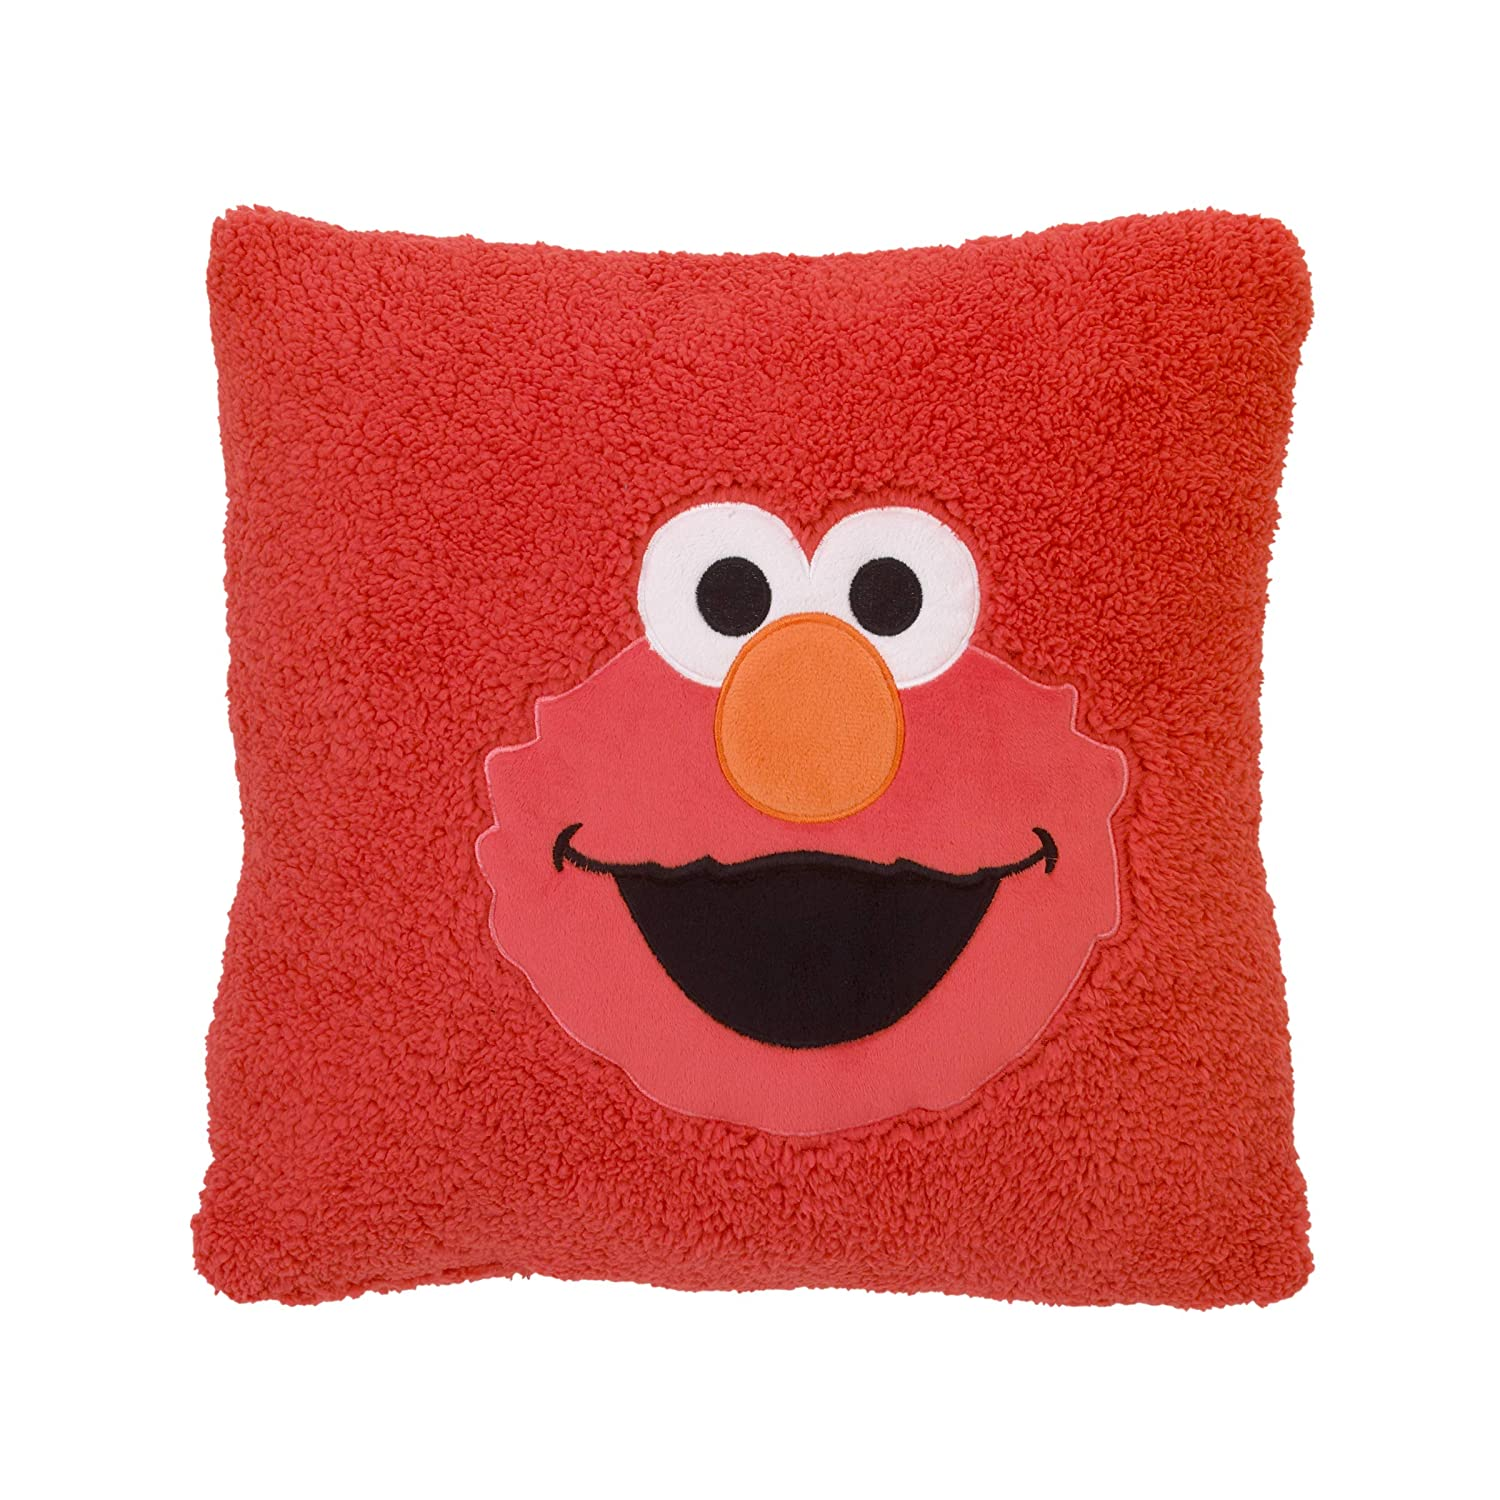 Sesame Street Elmo Red Super Soft Sherpa Toddler Pillow with Applique, Red/Orange/White/Black